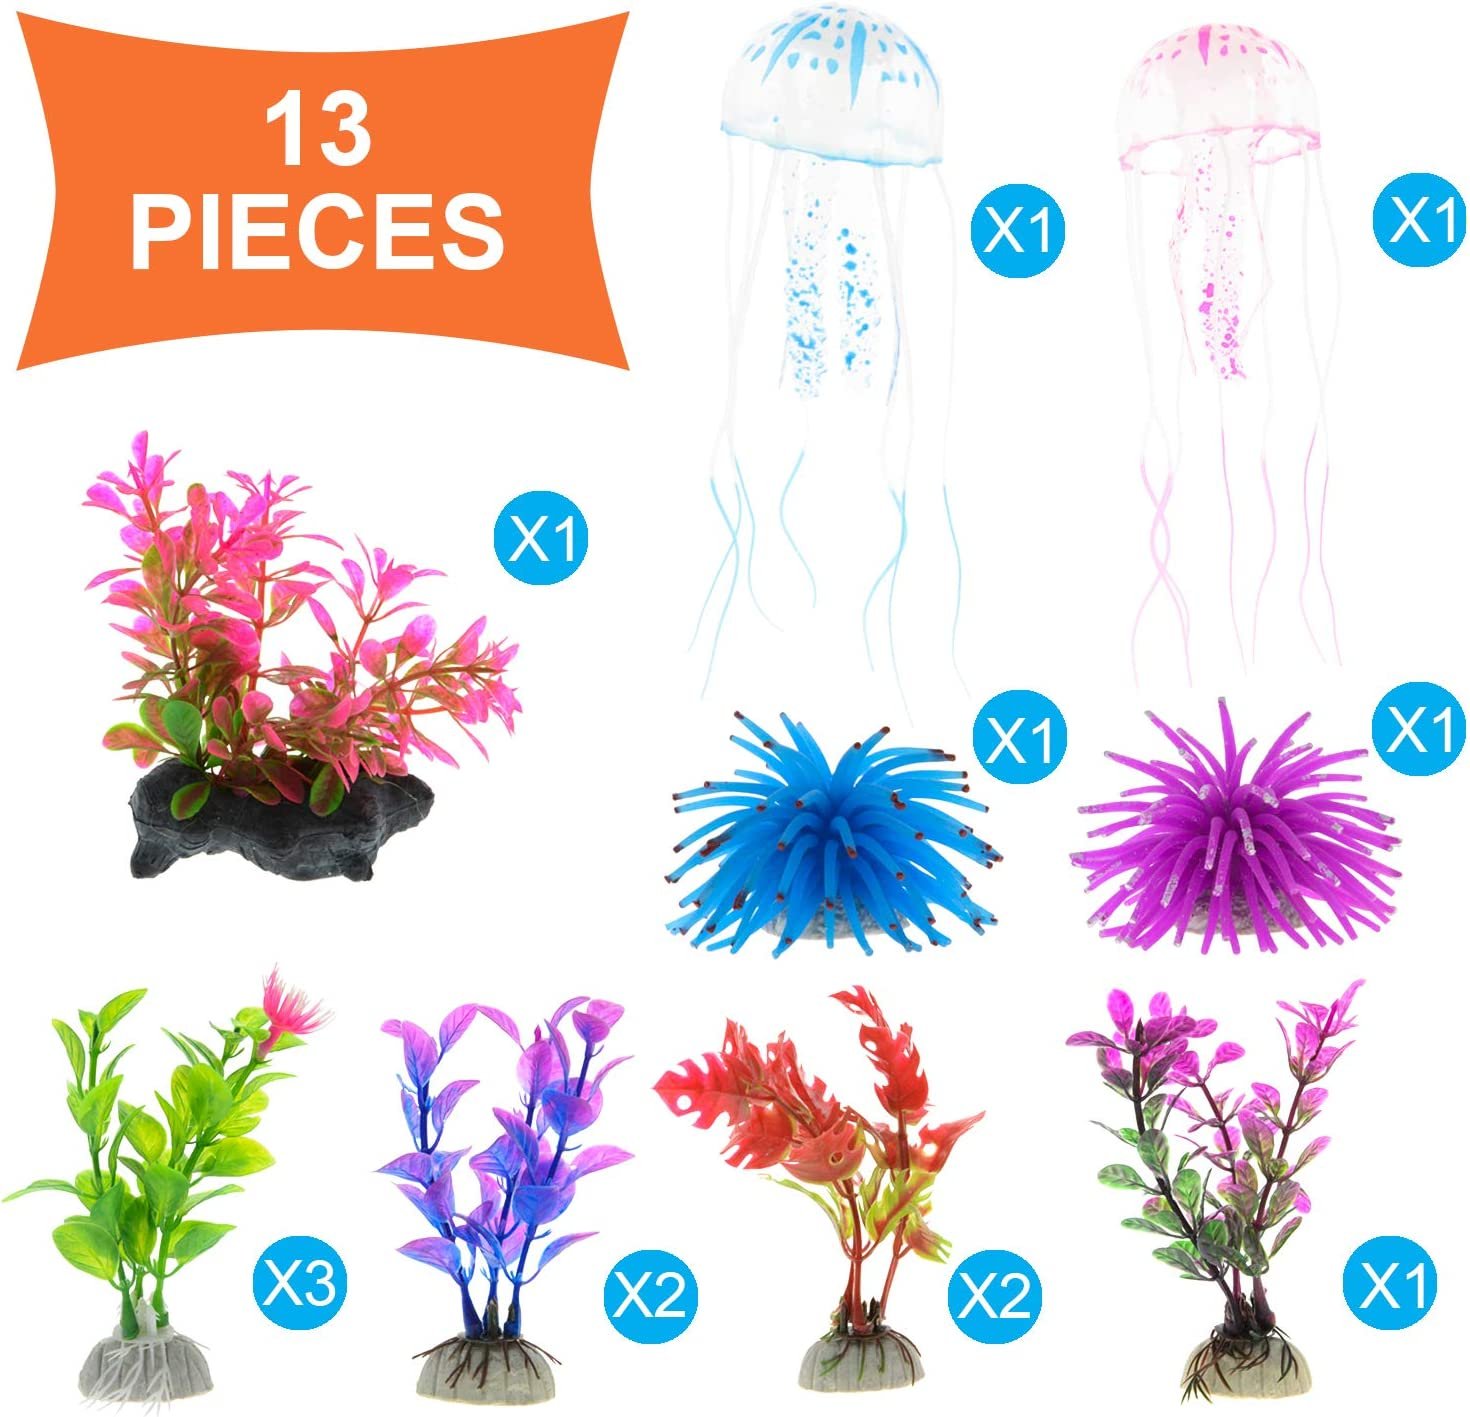 GreenJoy Aquarium Decorations Fish Tank Decor 13 Pack Fish Cave Ornament Plastic Plants Christmas Pumpkin Anemones Artificial Aquatic Plants Halloween Small